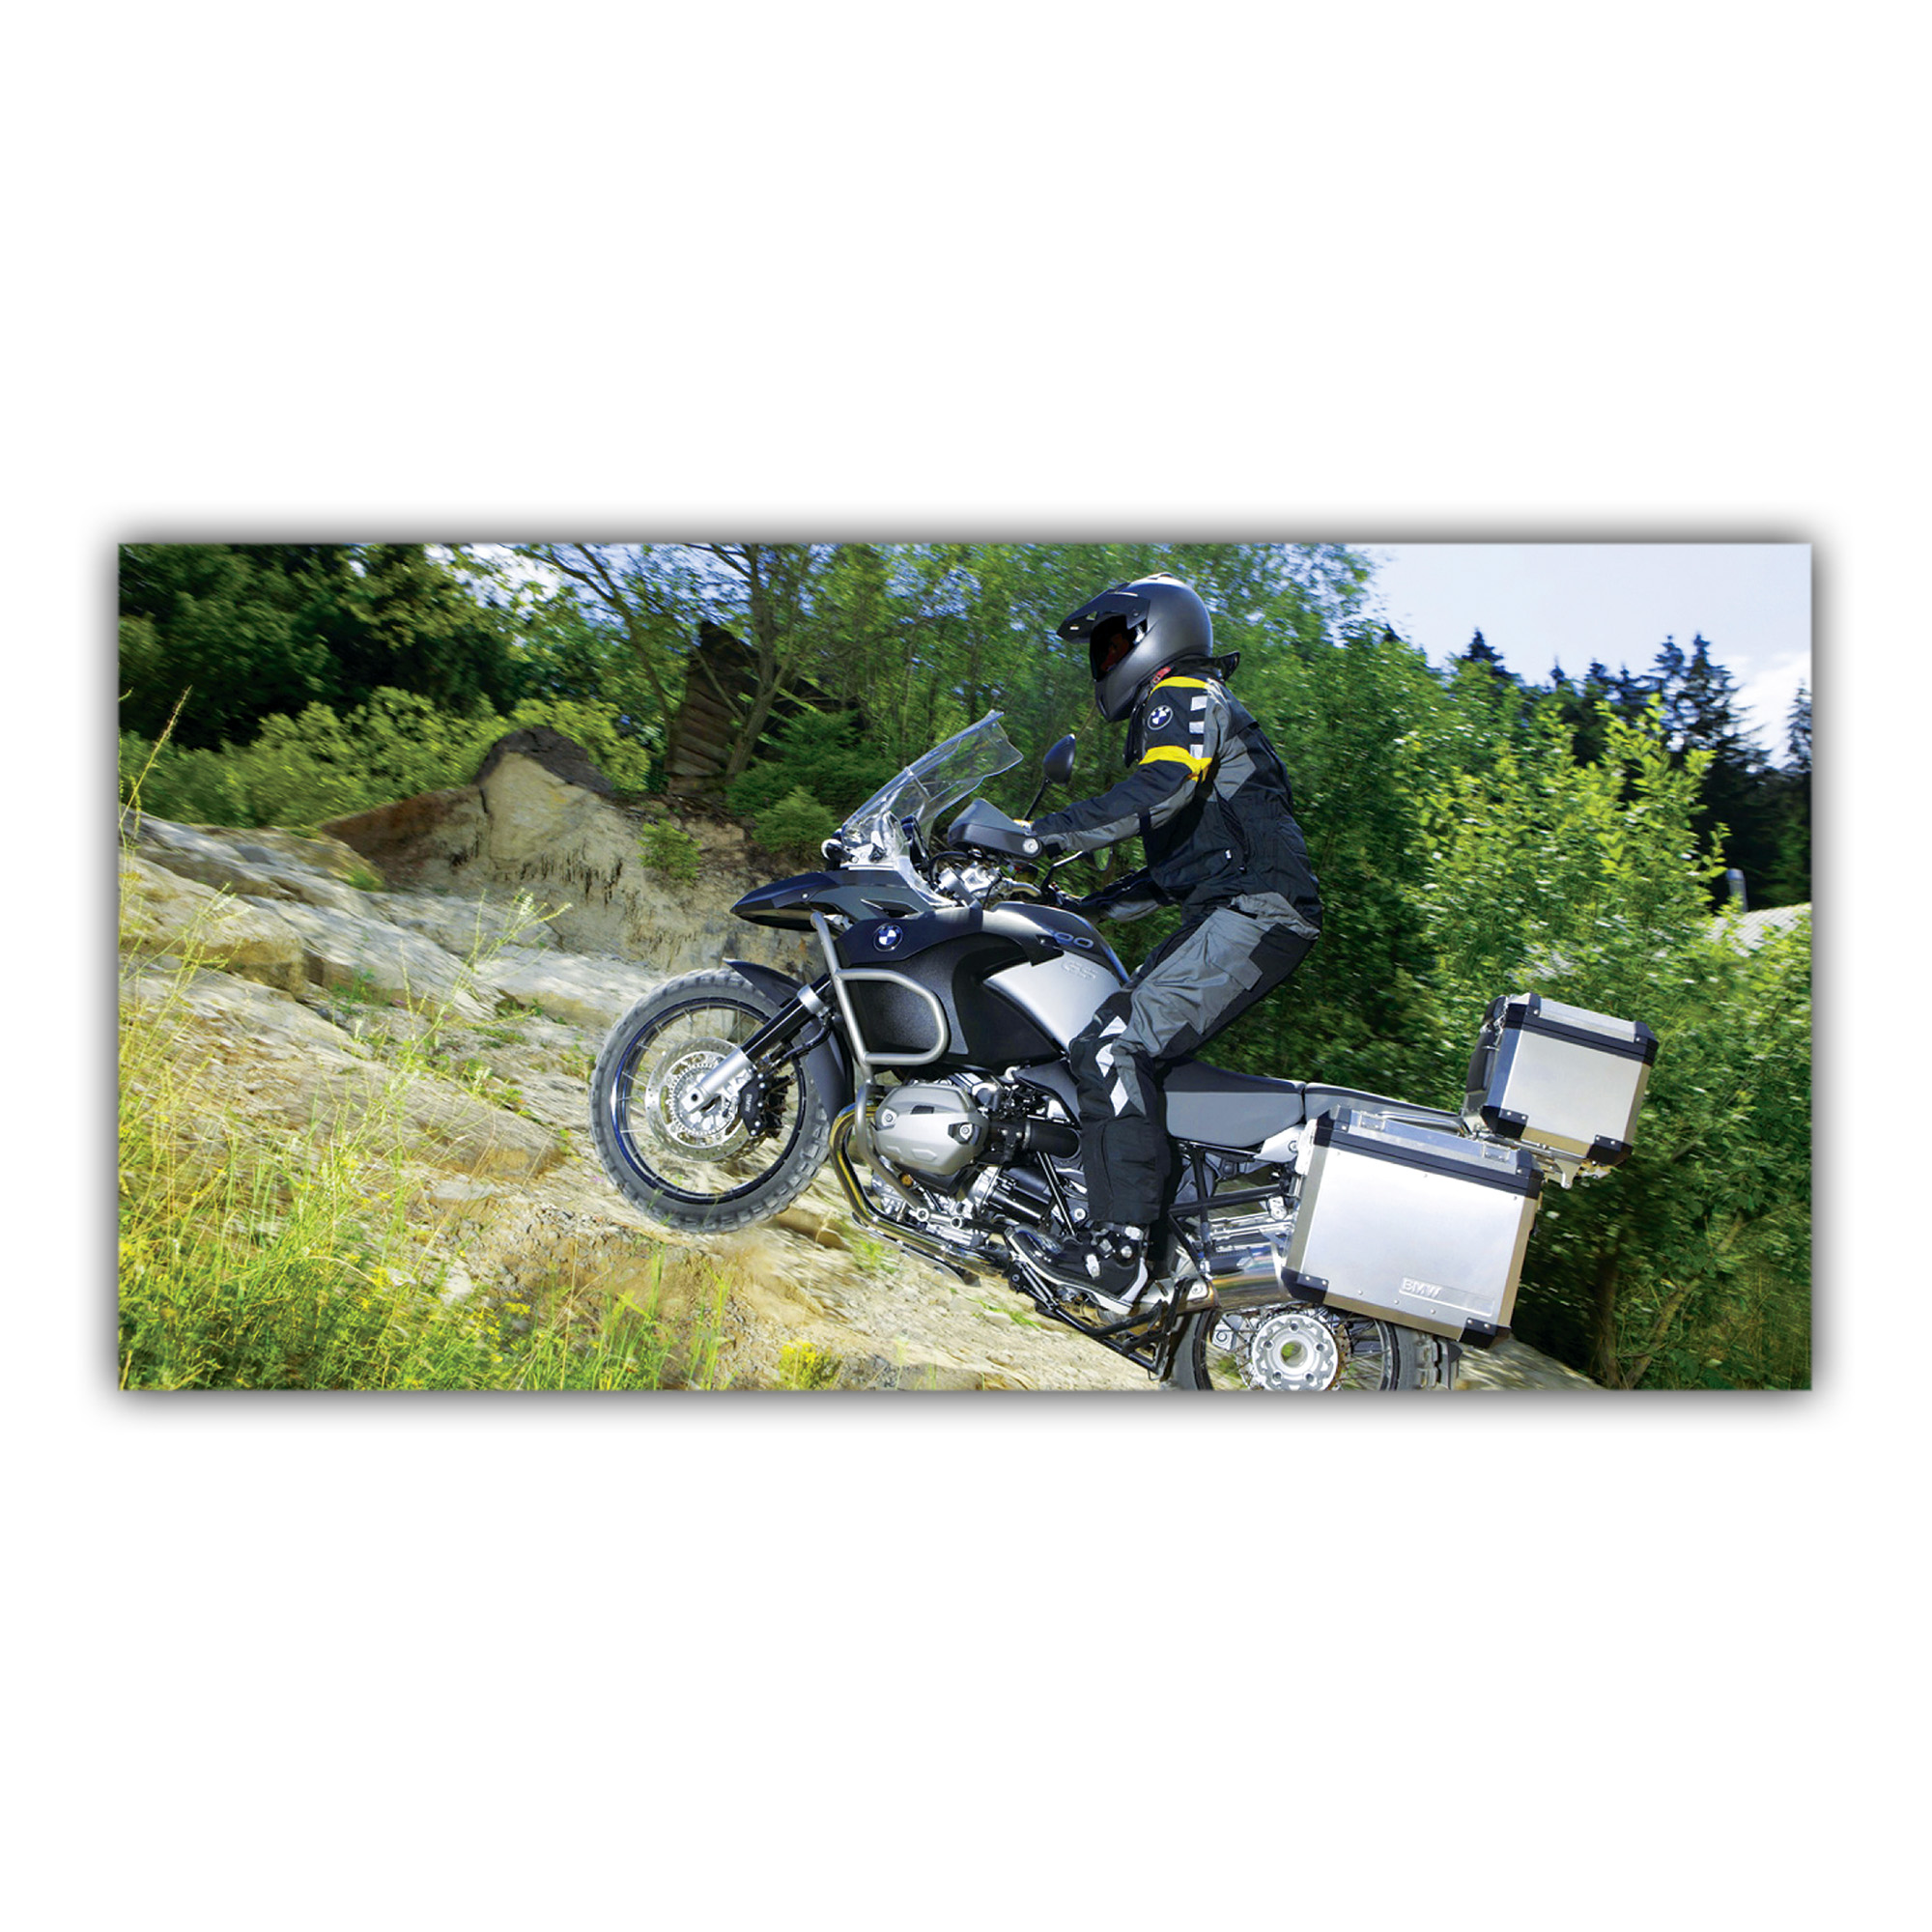 BMW 1200 GS Trail Enduro